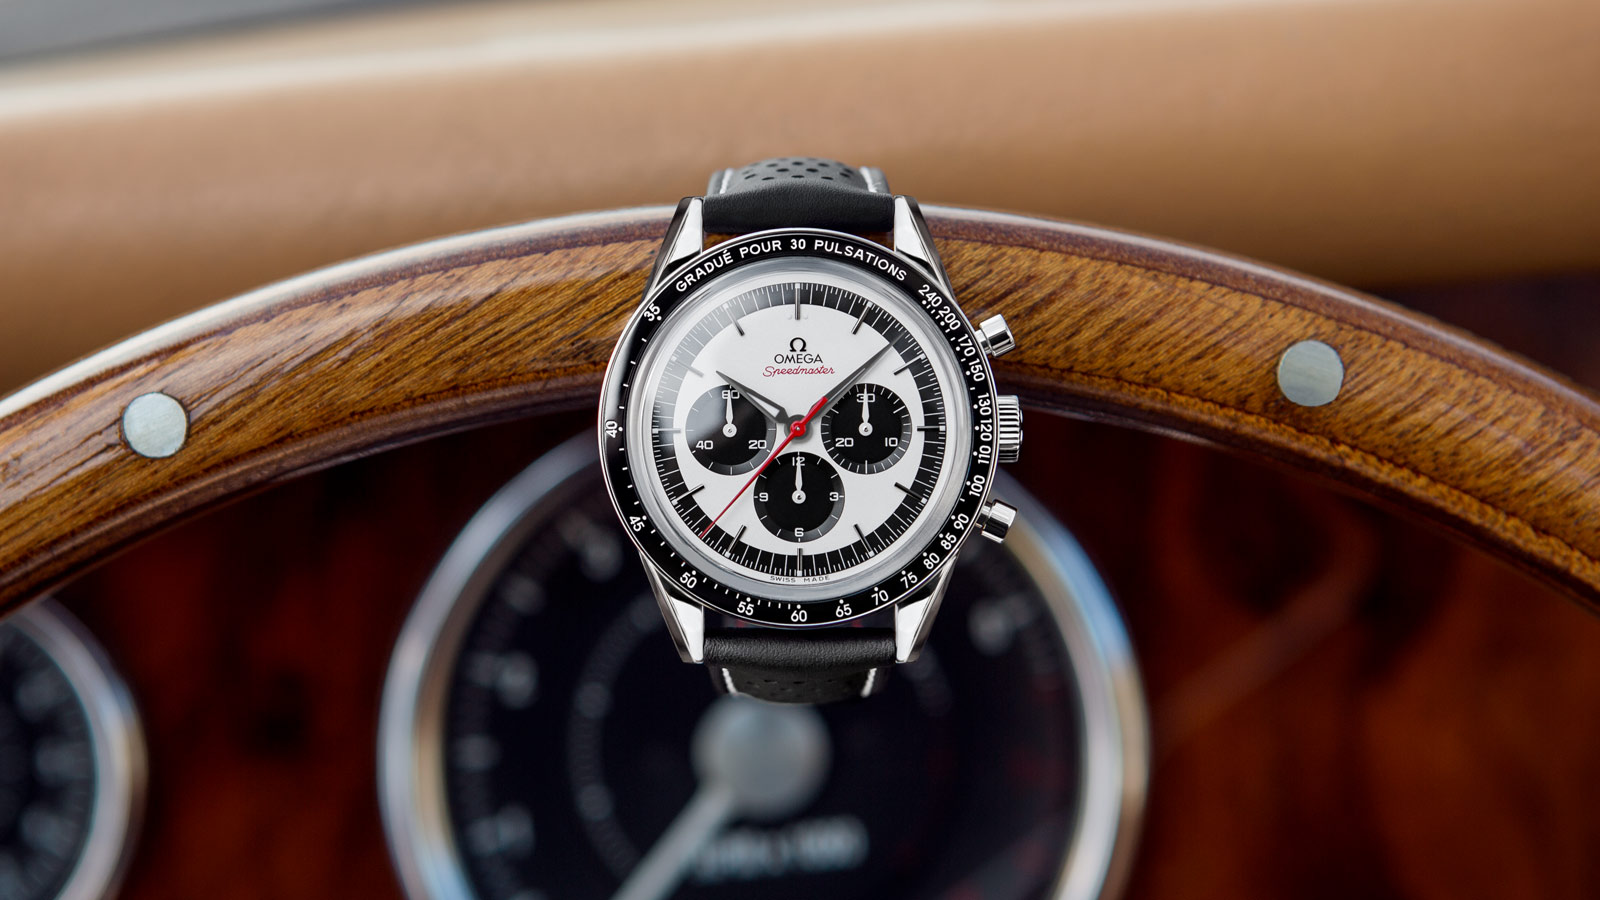 Speedmaster ムーンウォッチ Moonwatch Chronograph 39.7 mm - 311.32.40.30.02.001 - ビュー 1